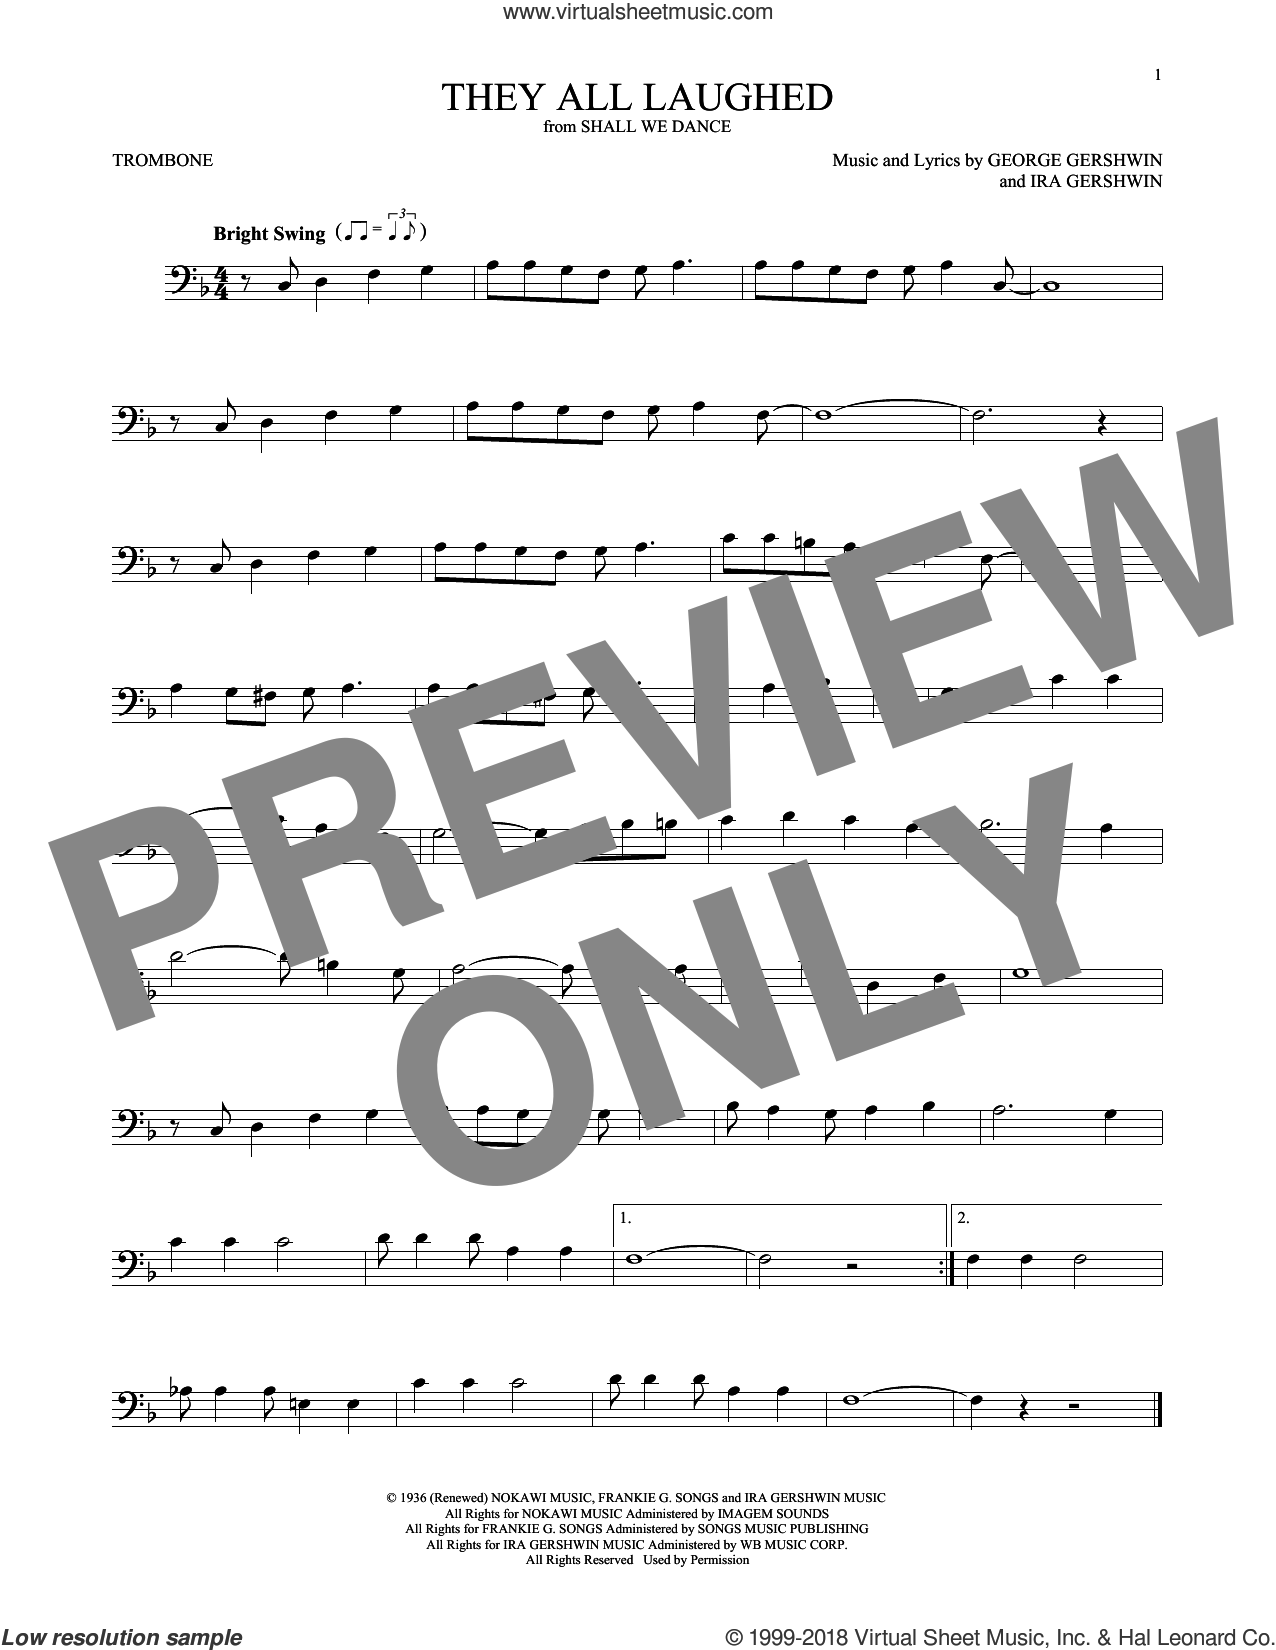 They All Laughed sheet music for trombone solo by George Gershwin, Frank Sinatra and Ira Gershwin, intermediate skill level